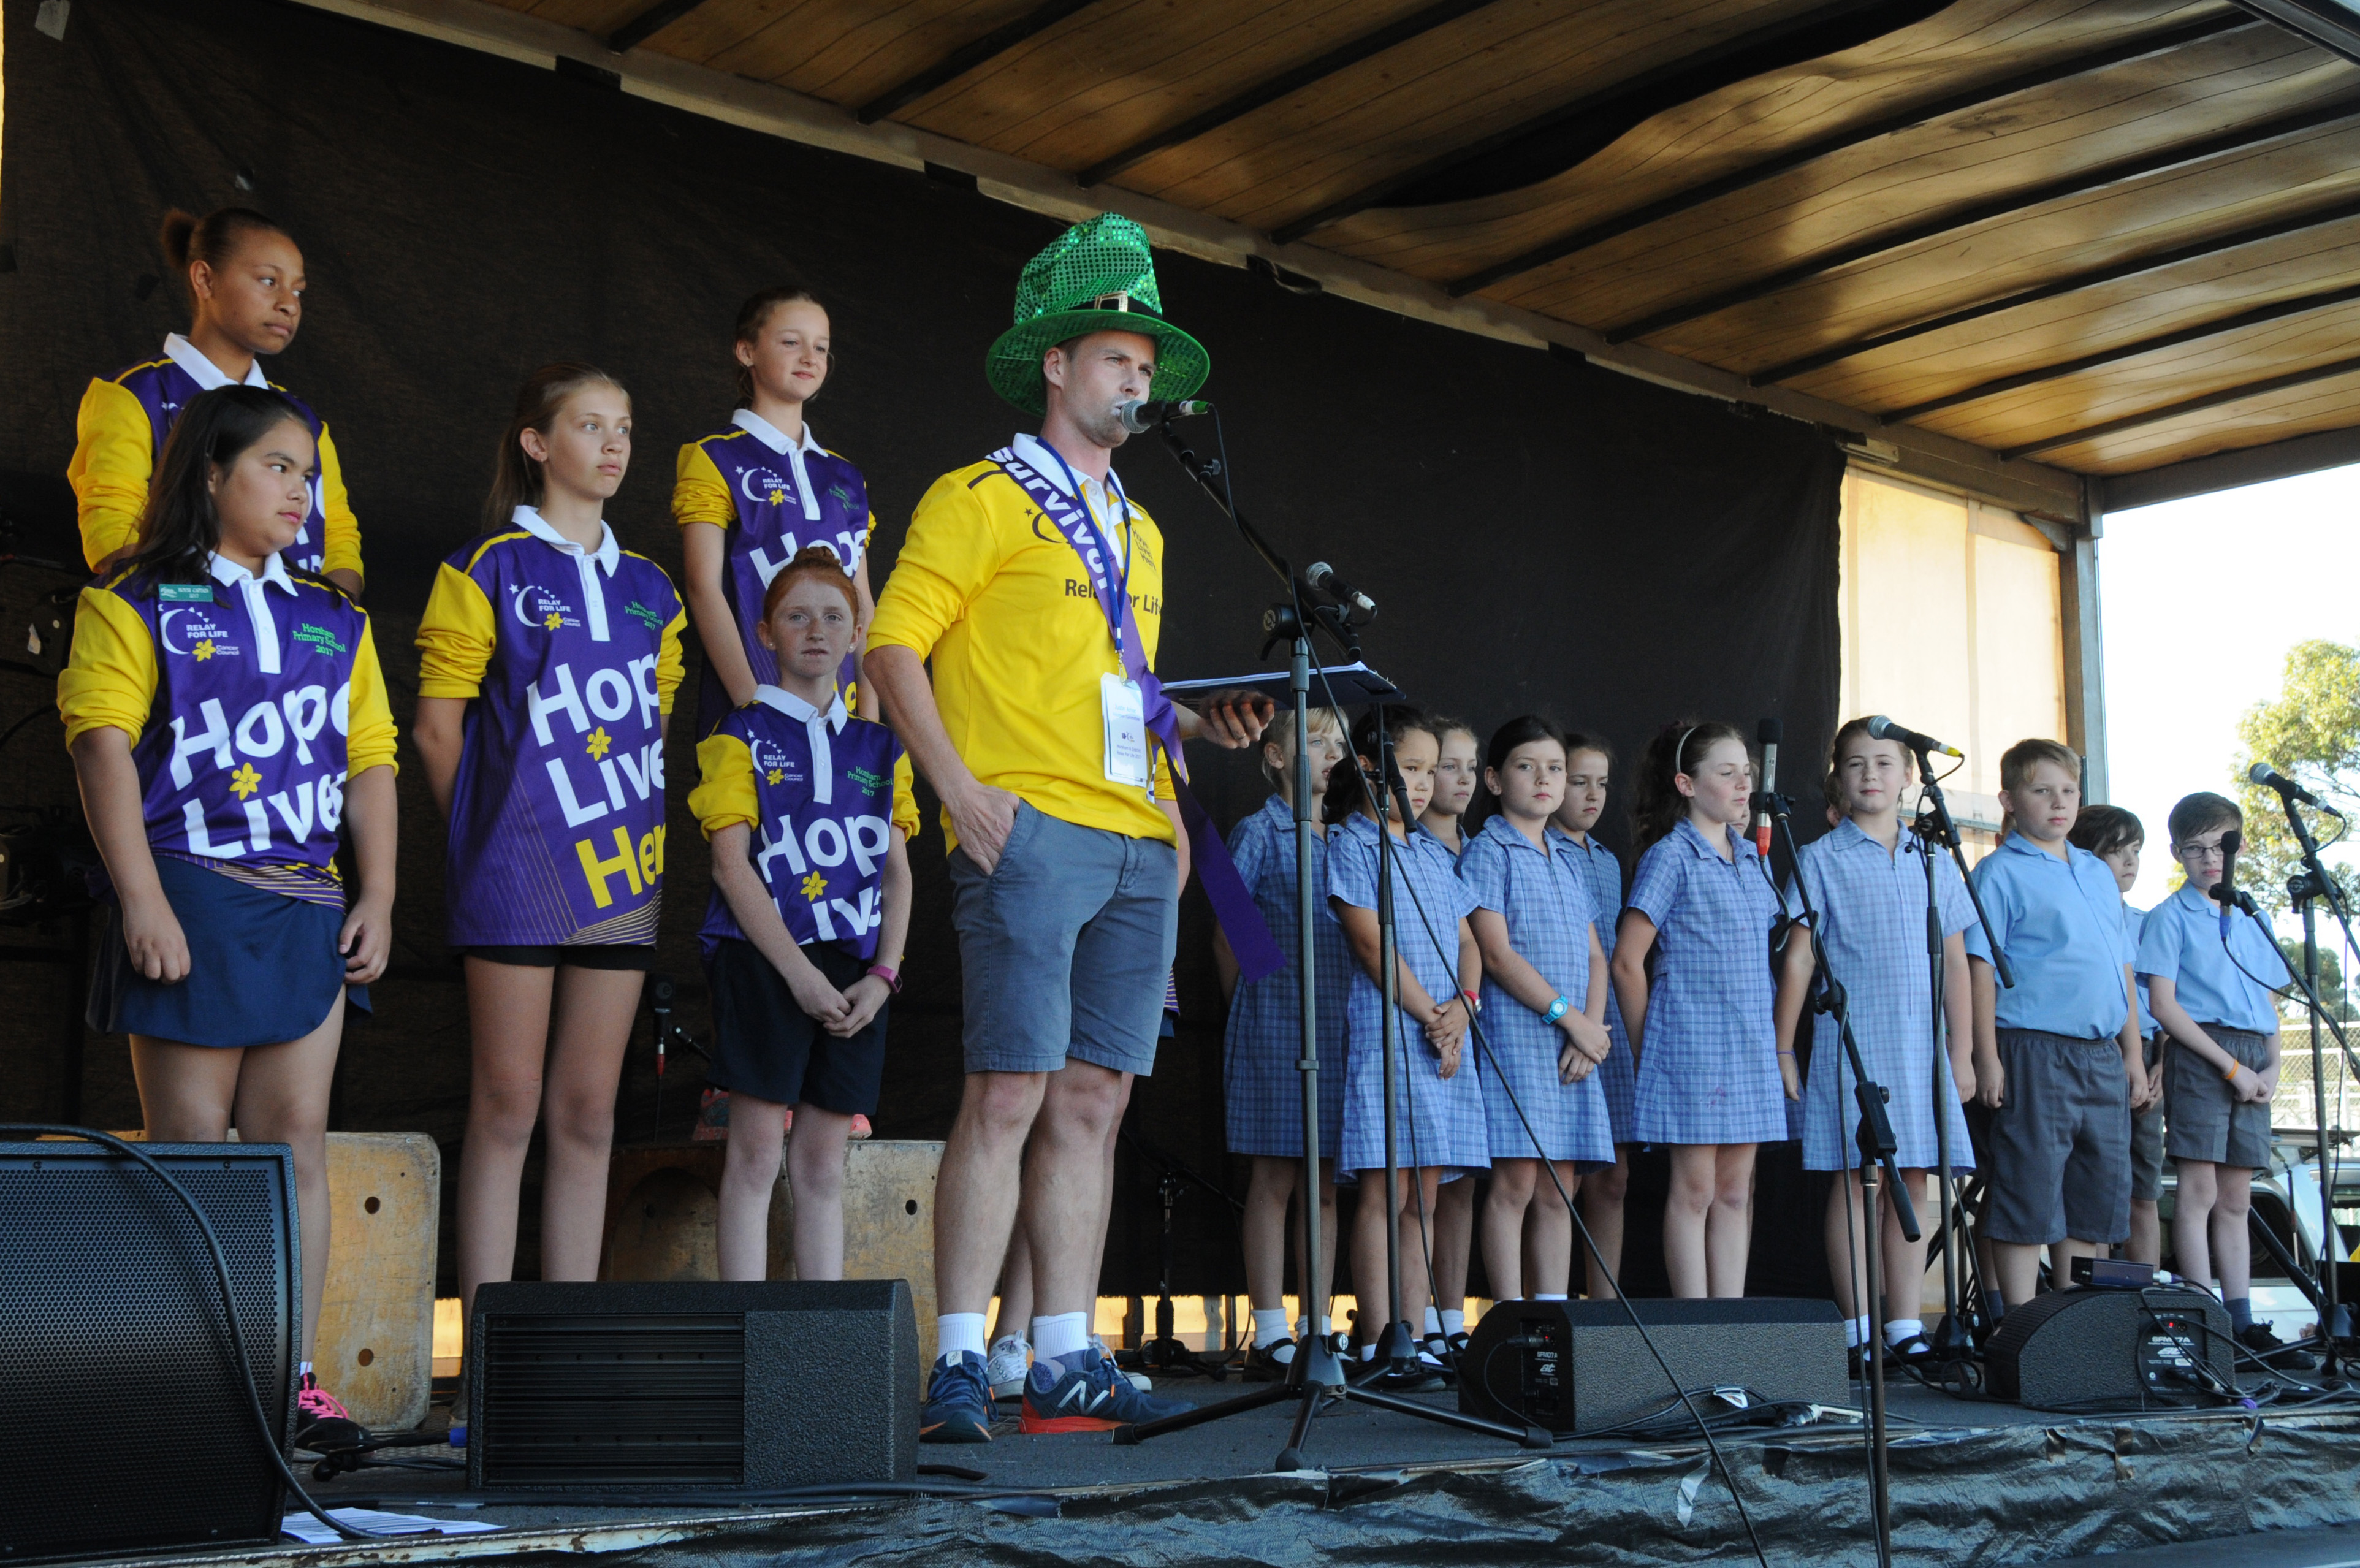 Image - Horsham and District Relay for Life, 170317. Horsham Primary School signing choir, Justin Amor, and Holy Trinity Lutheran School pupils.